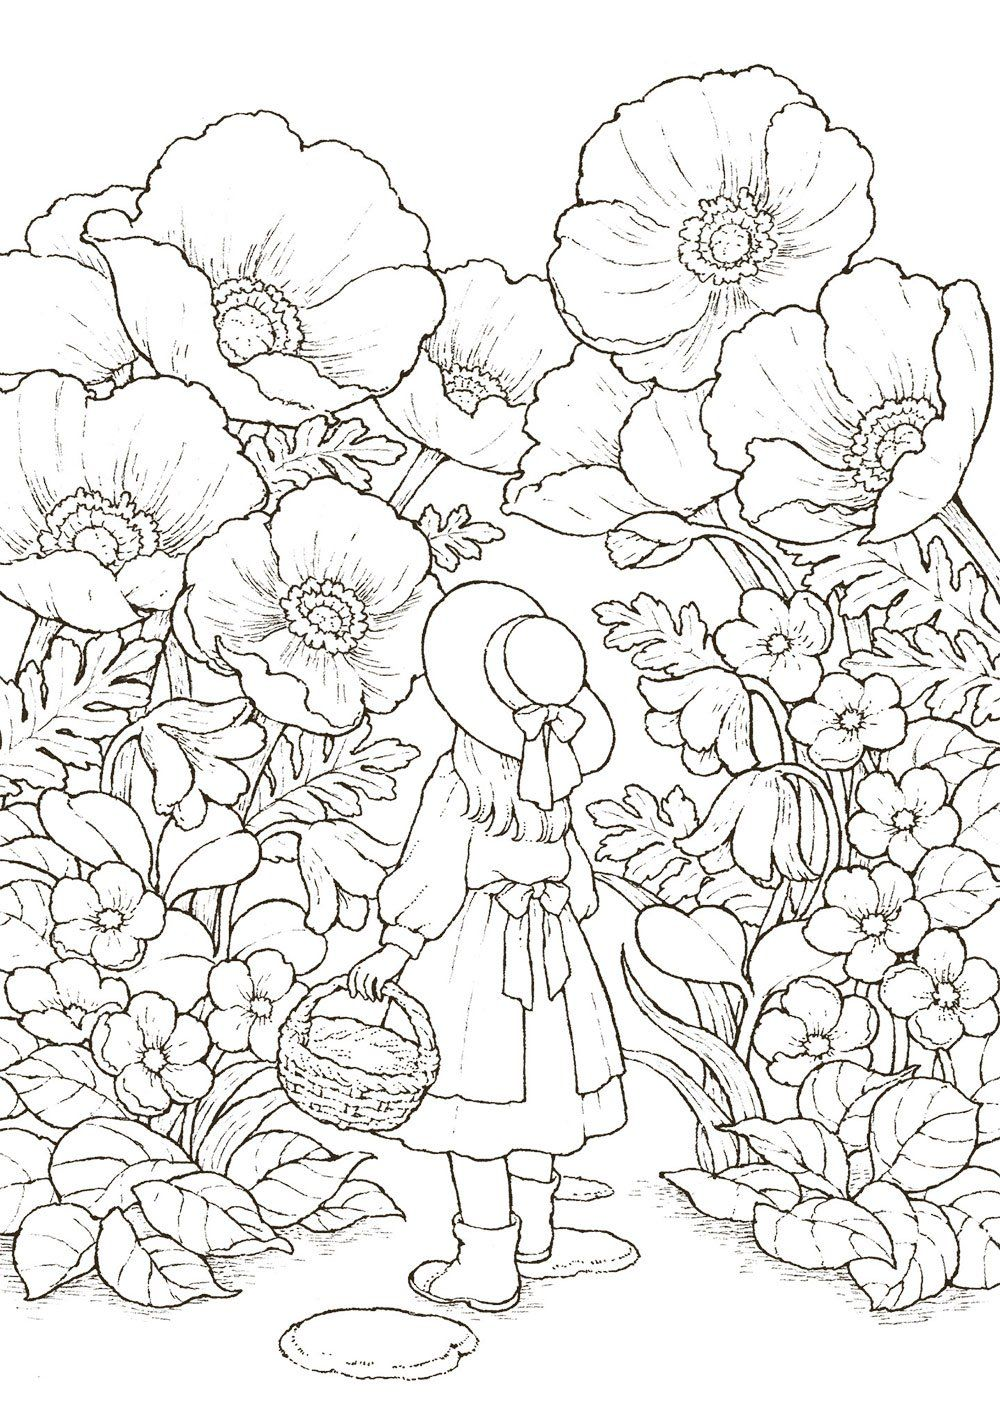 Ausmalbilder Blumen : Pin Von Stacy Mishina Auf Coloring Pages Pinterest Ausmalbilder